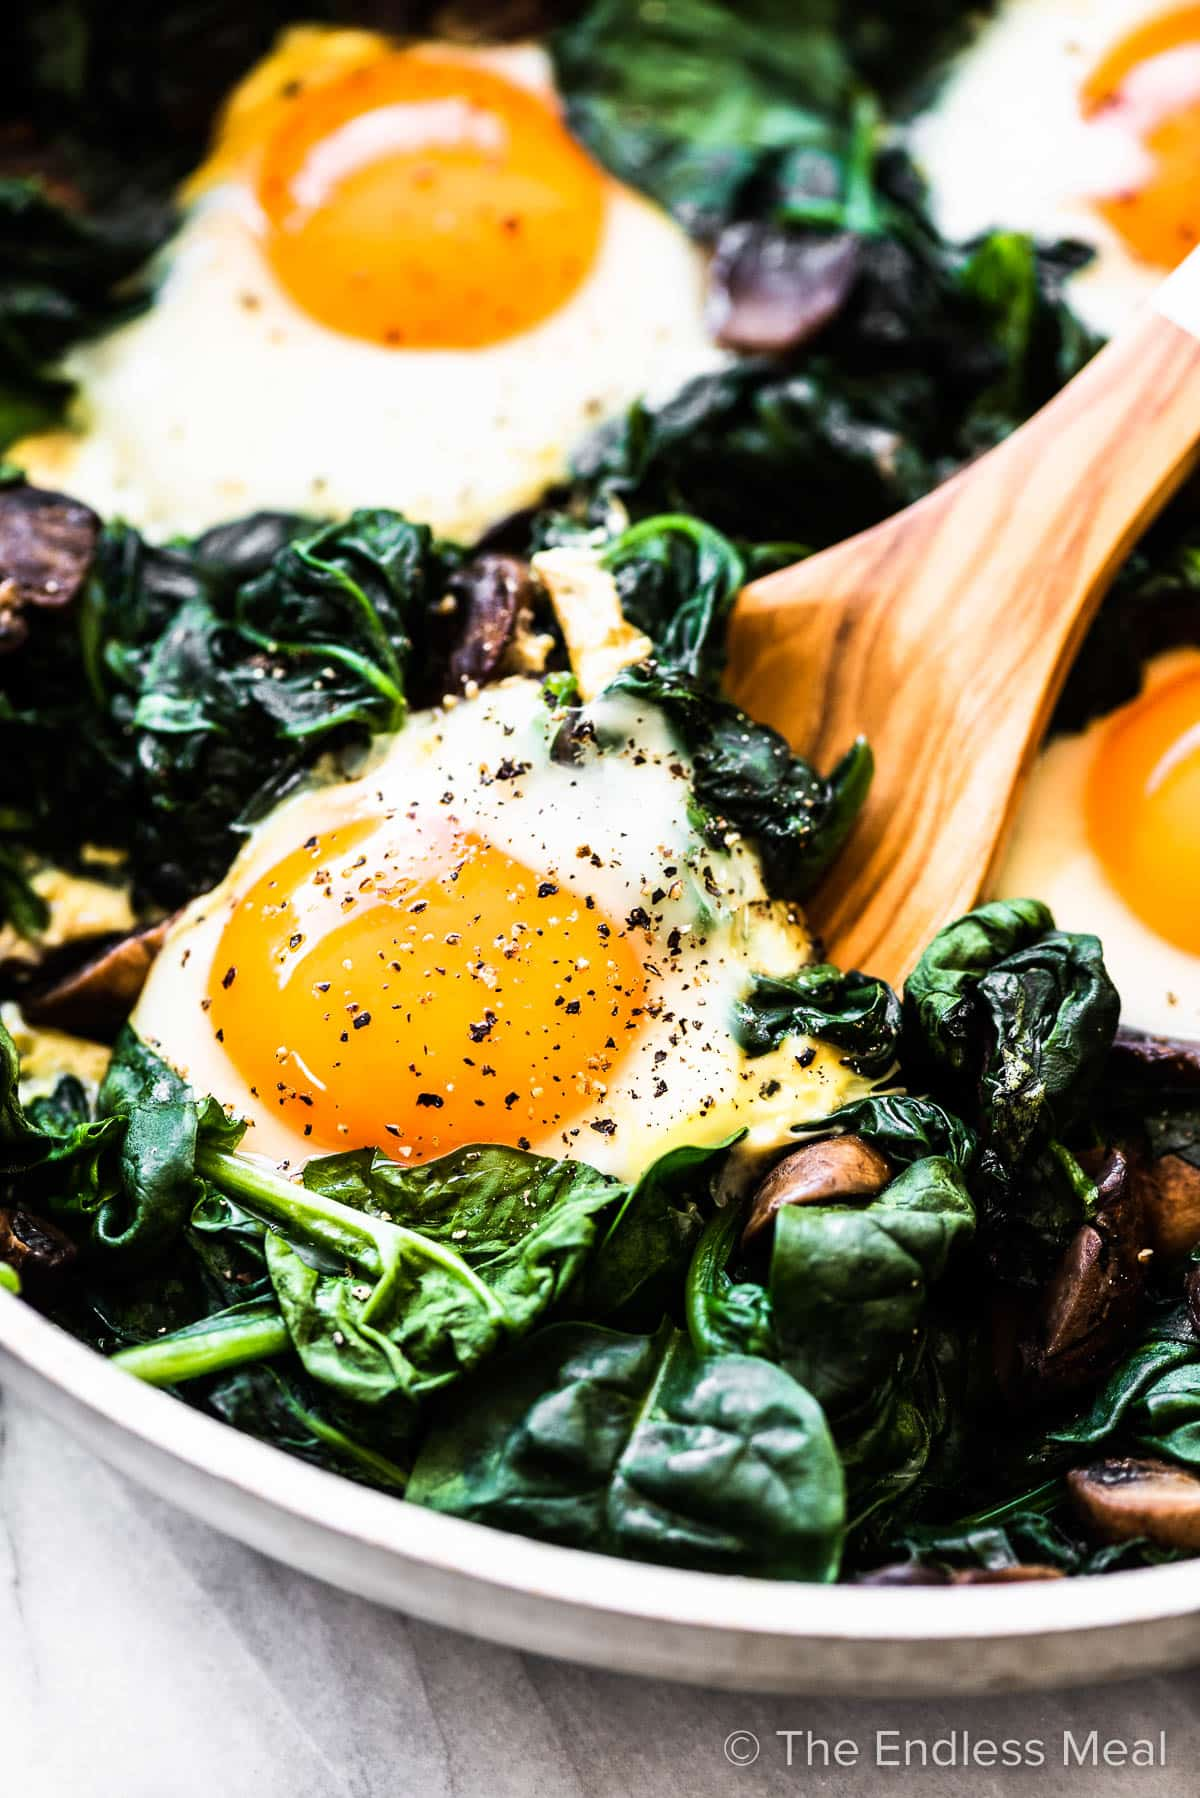 A closeup of a wooden spoon scooping some spinach and eggs out of a pan.